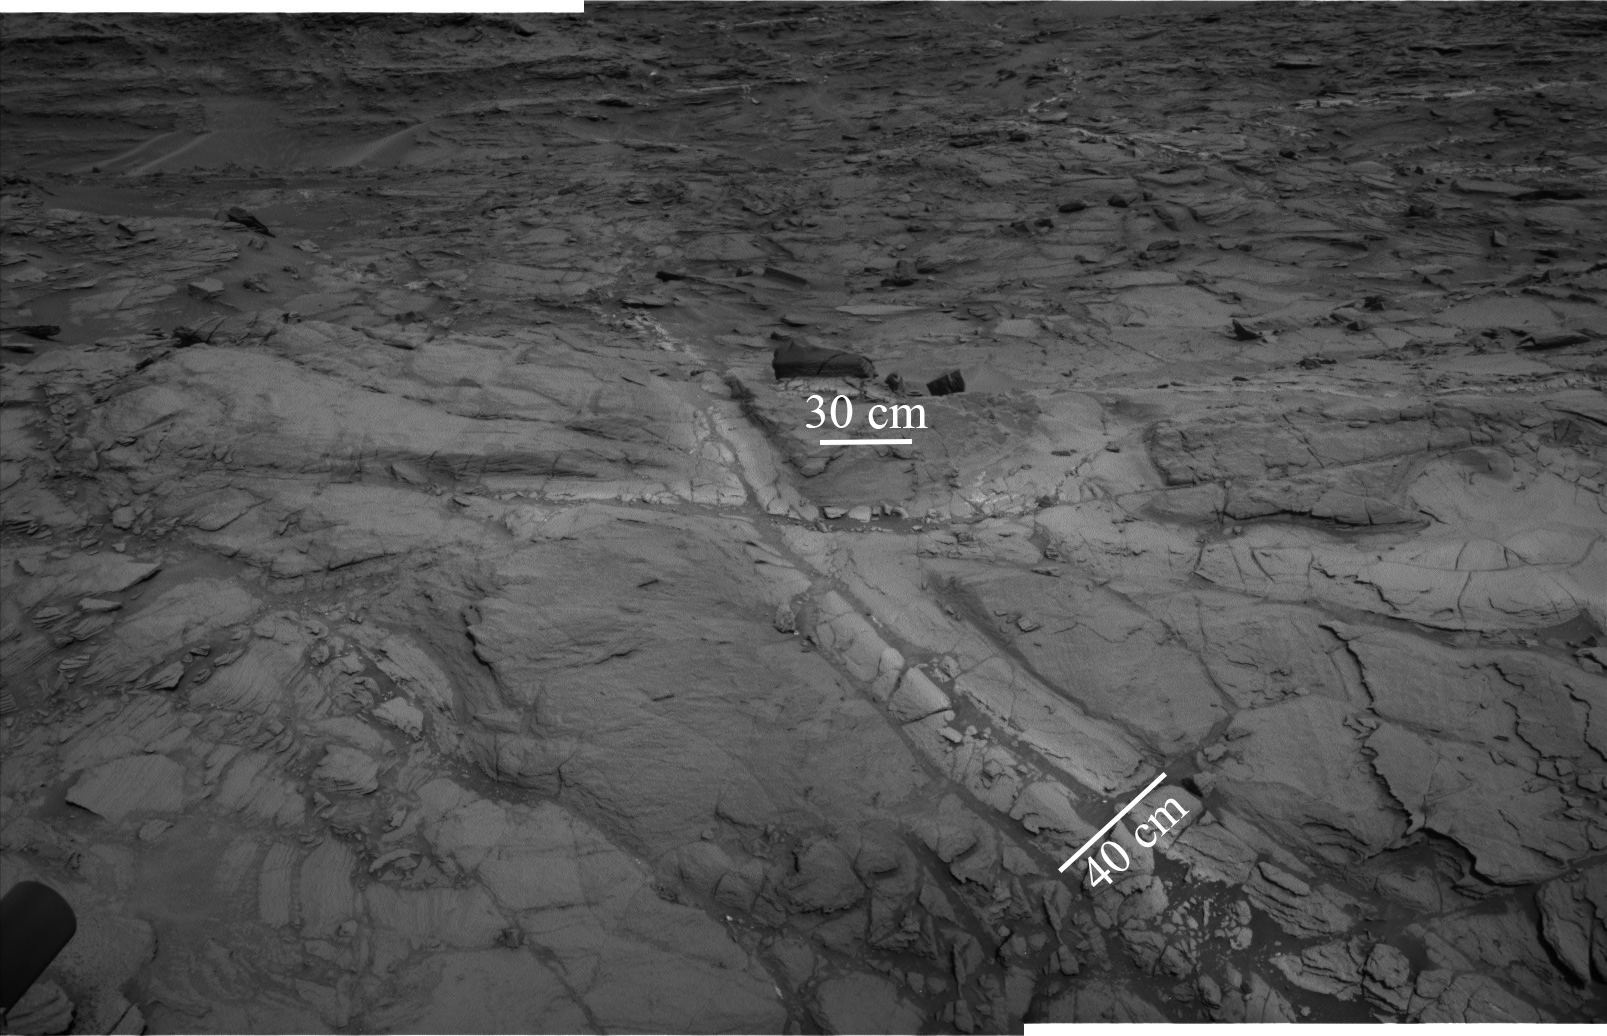 Mars had flowing water for long time, reveals high-silica halos